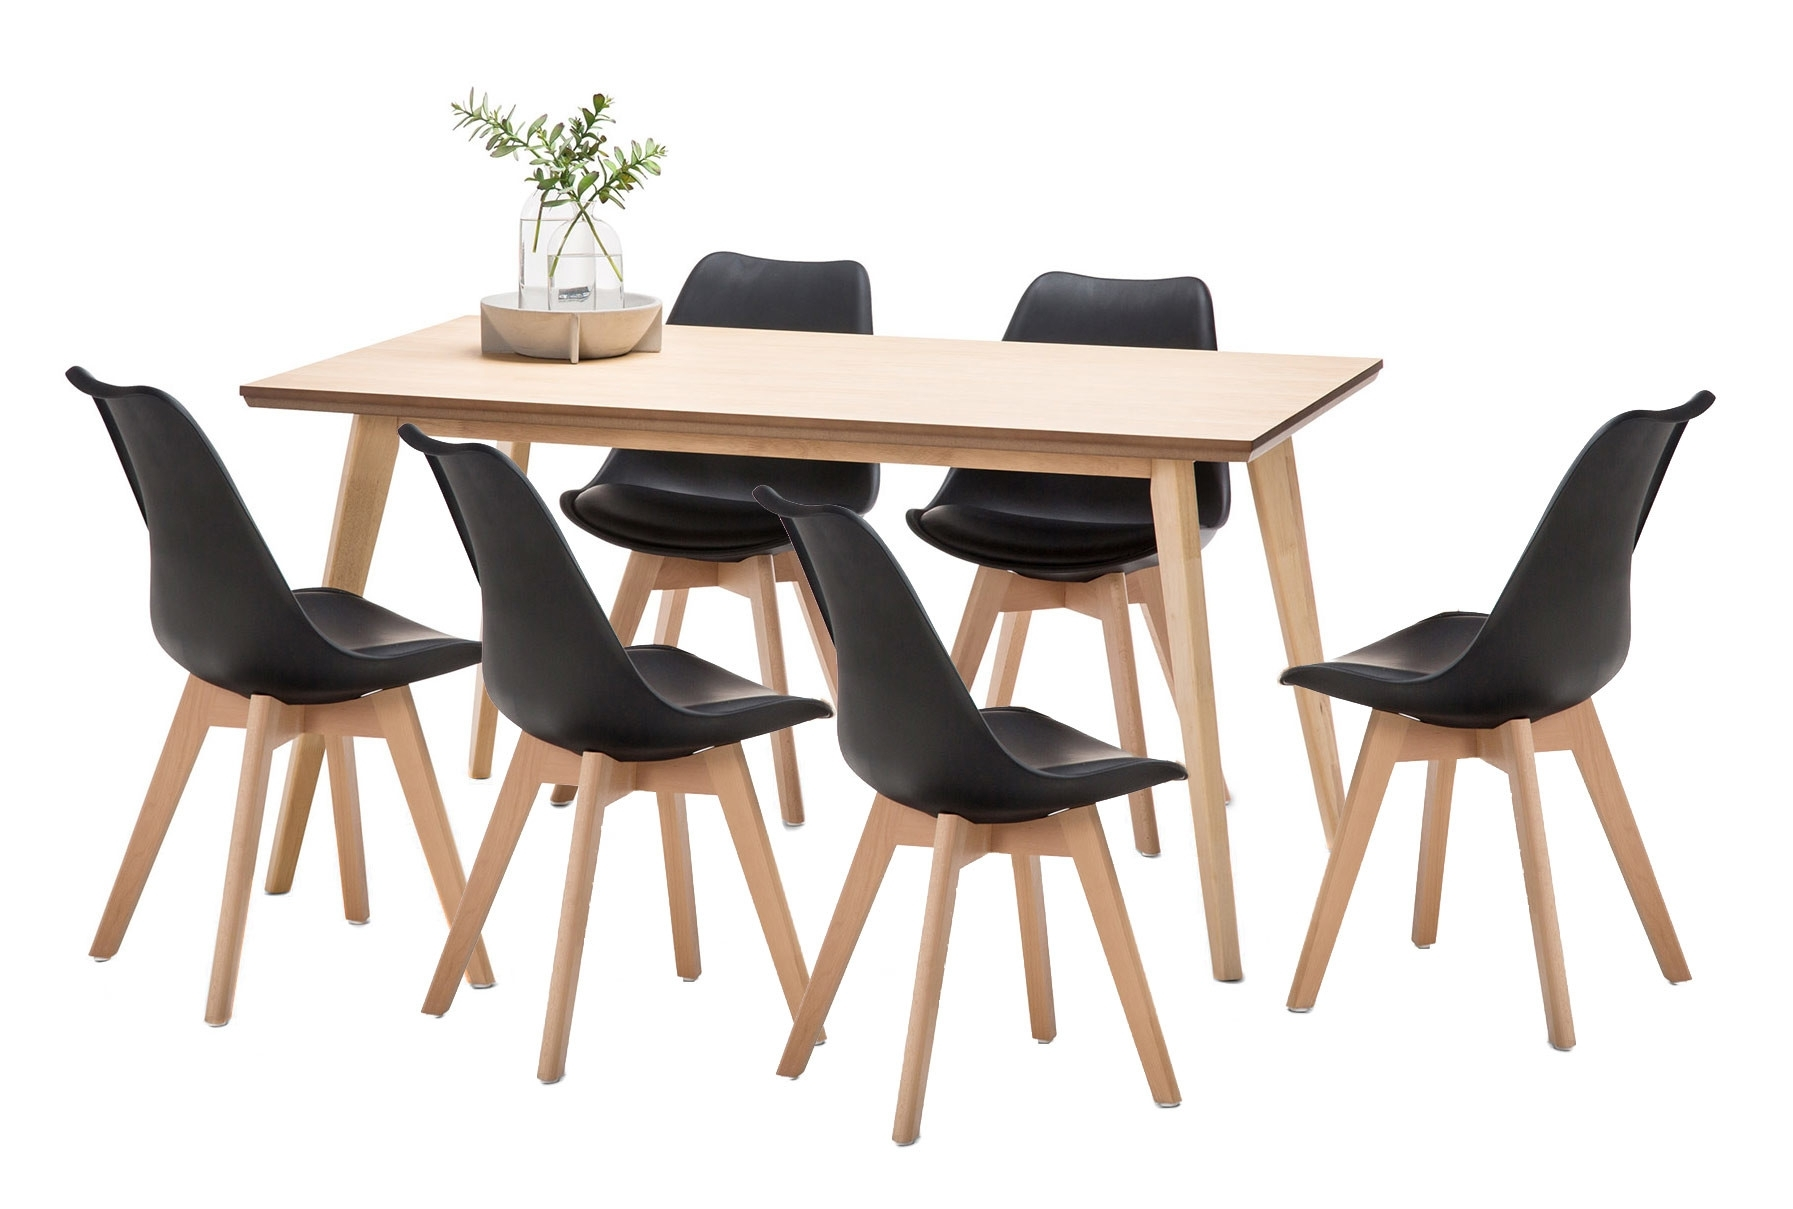 Wyatt Dining Table & 6 Padded Eames Replica Chairs Set | Temple With Most Current Wyatt Dining Tables (Image 14 of 20)